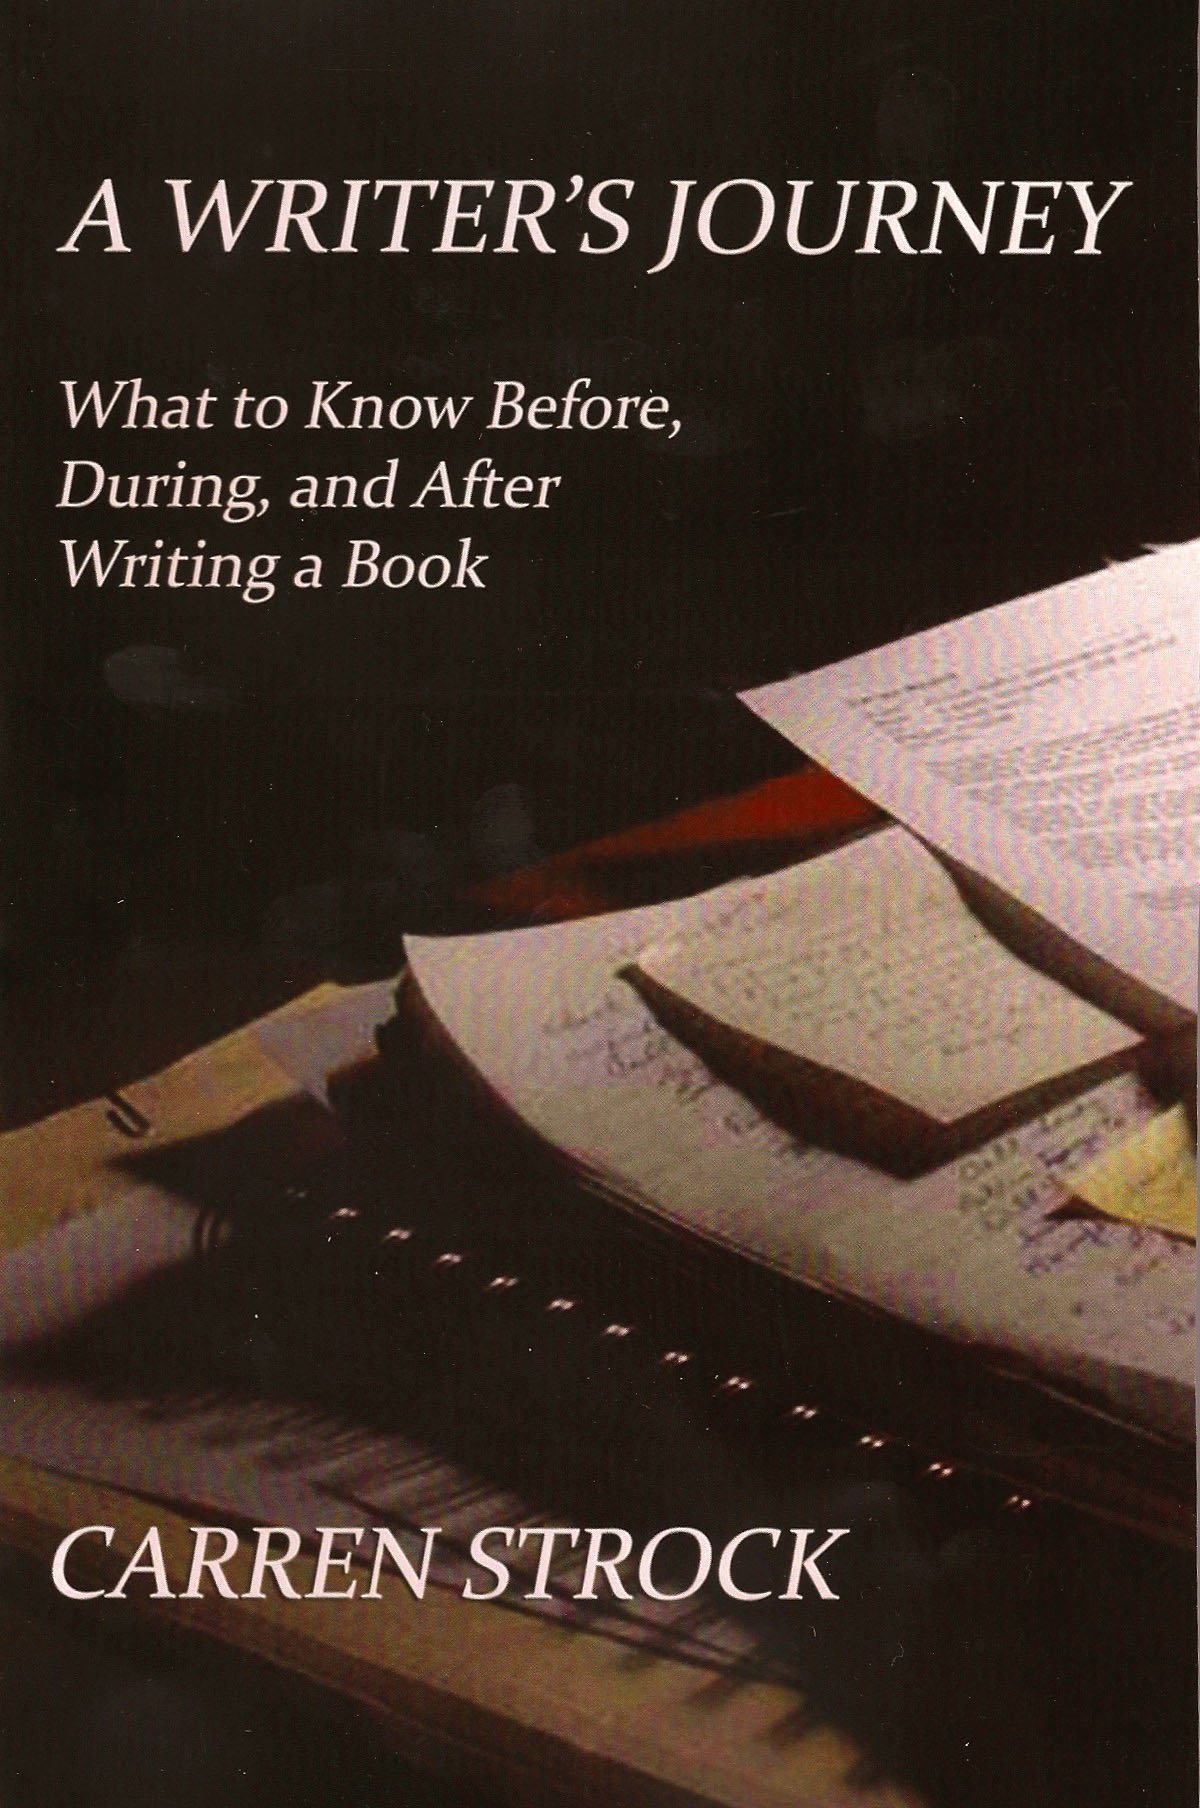 writing is a journey The hero's journey the hero's journey, also referred to as the monomyth, is an idea formulated by noted mythologist joseph campbell the central concept of the monomyth is that a pattern can be seen in stories and myths across history.